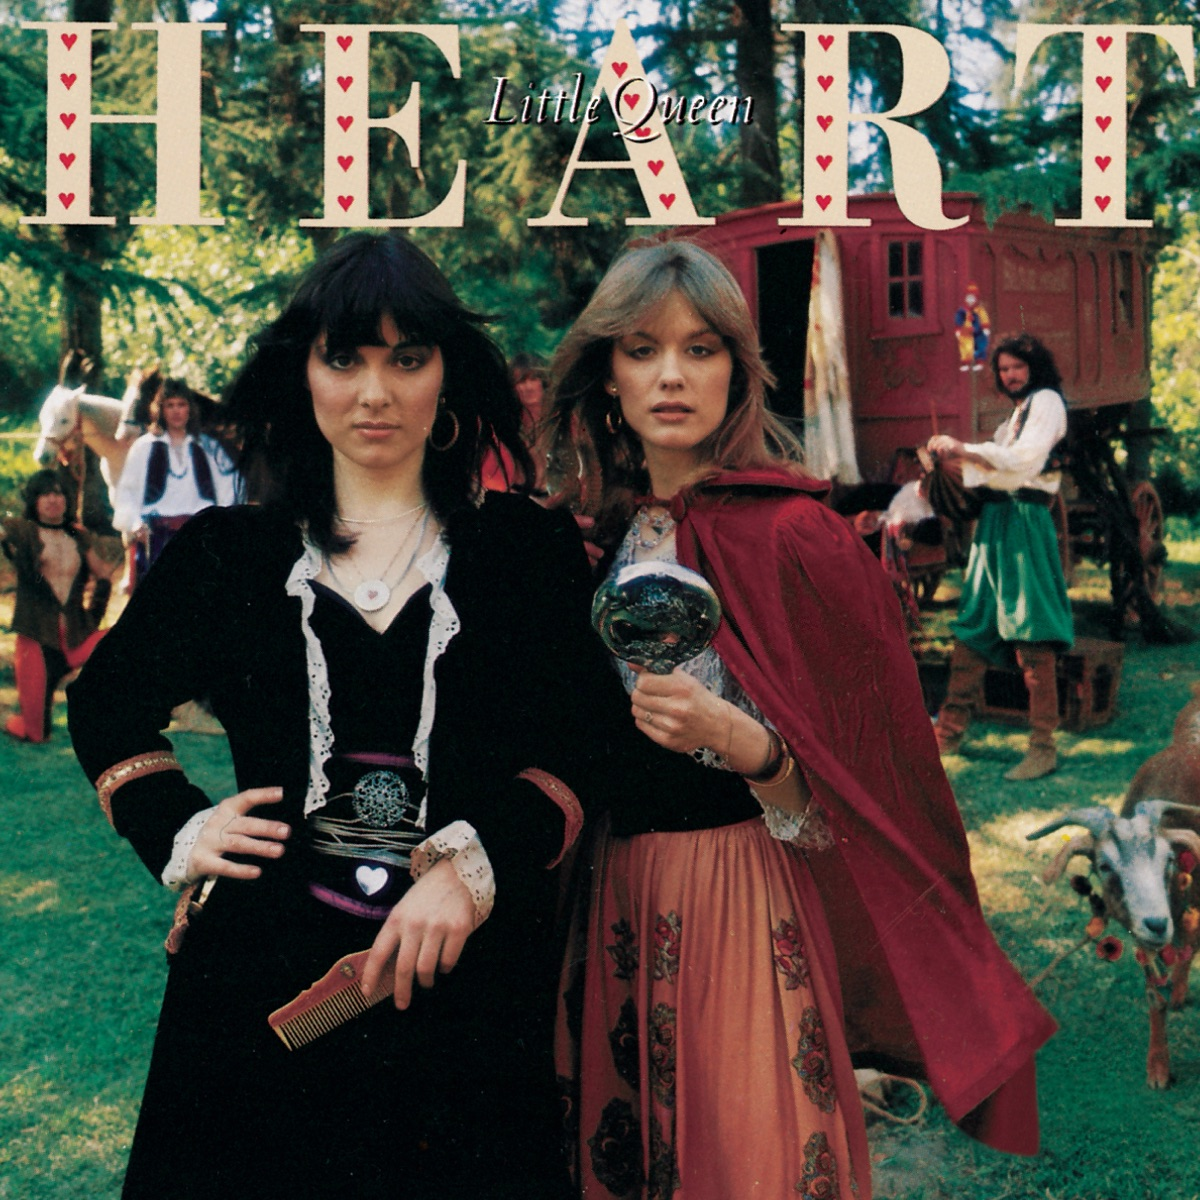 Little Queen Album Cover by Heart